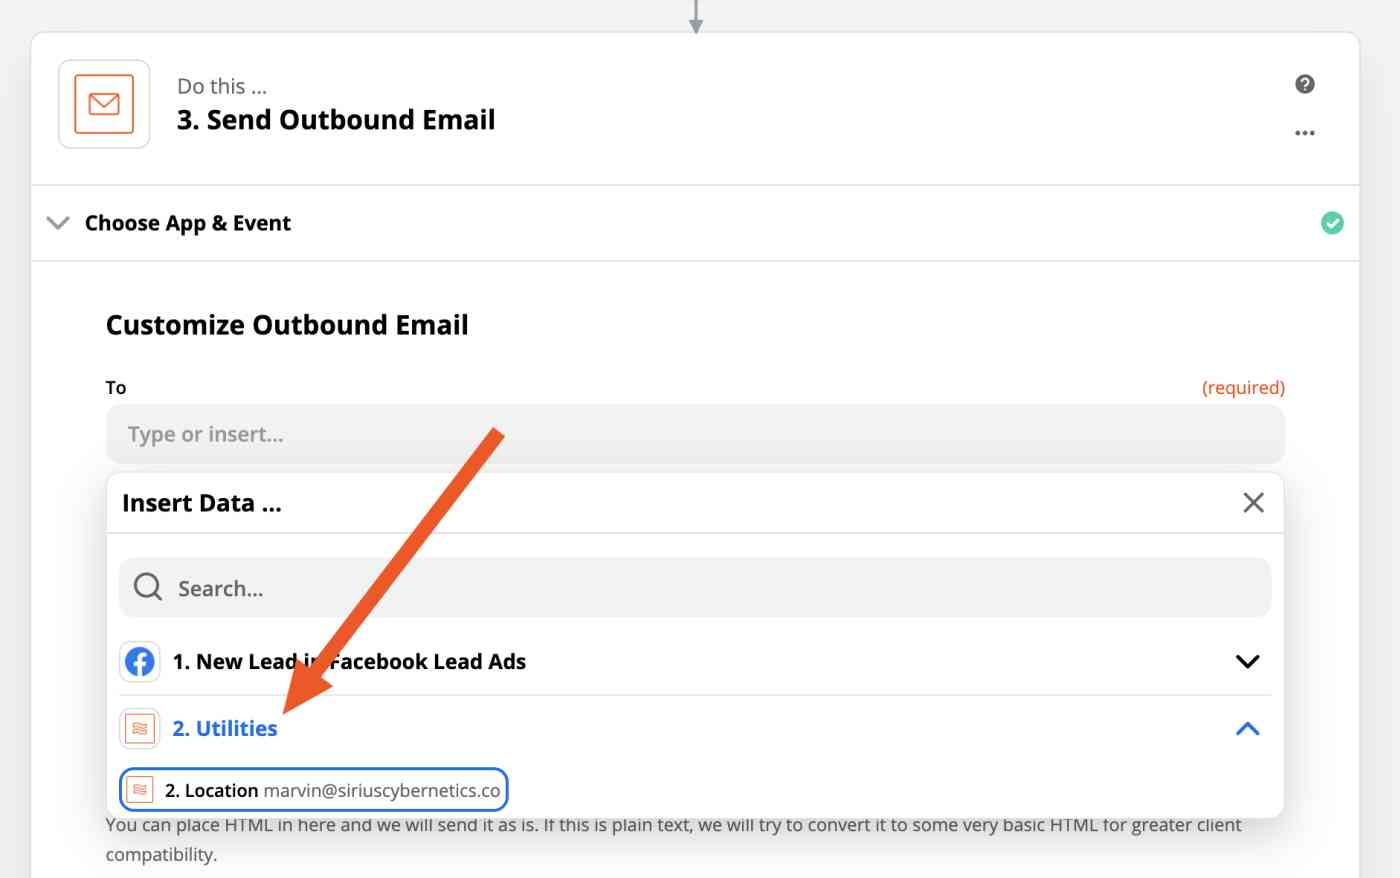 Arrow pointing from the To field in the Send Email to the values provided by the Utilities action, which should be the result of the Lookup Table.